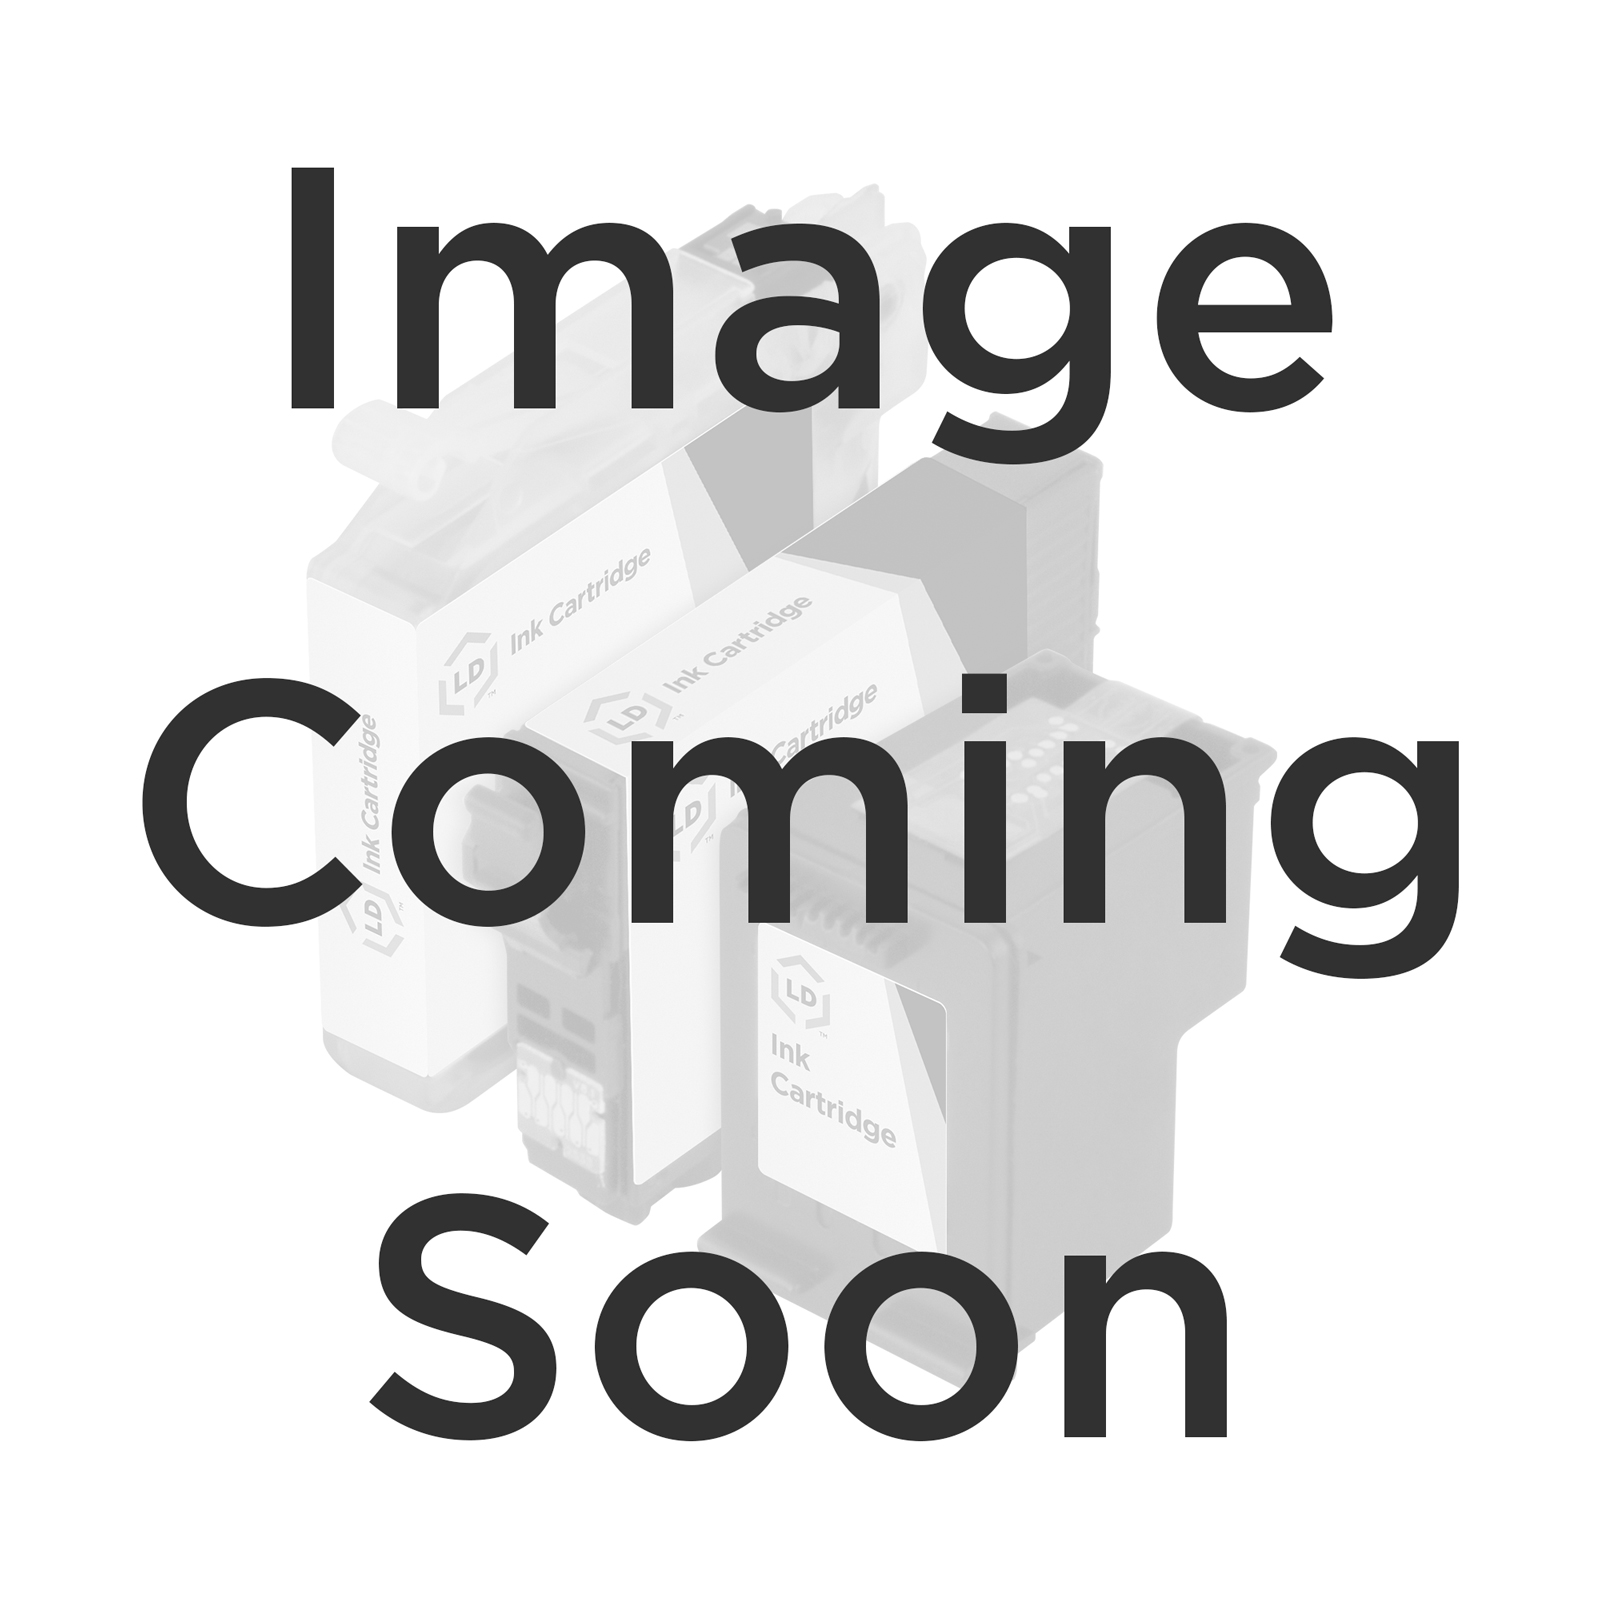 Compatible Canon PGI270XL & CLI271XL: 1 Pigment Bk PGI270XL & 1 Each of CLI271XL Bk, C, M, Y (Set of Ink)